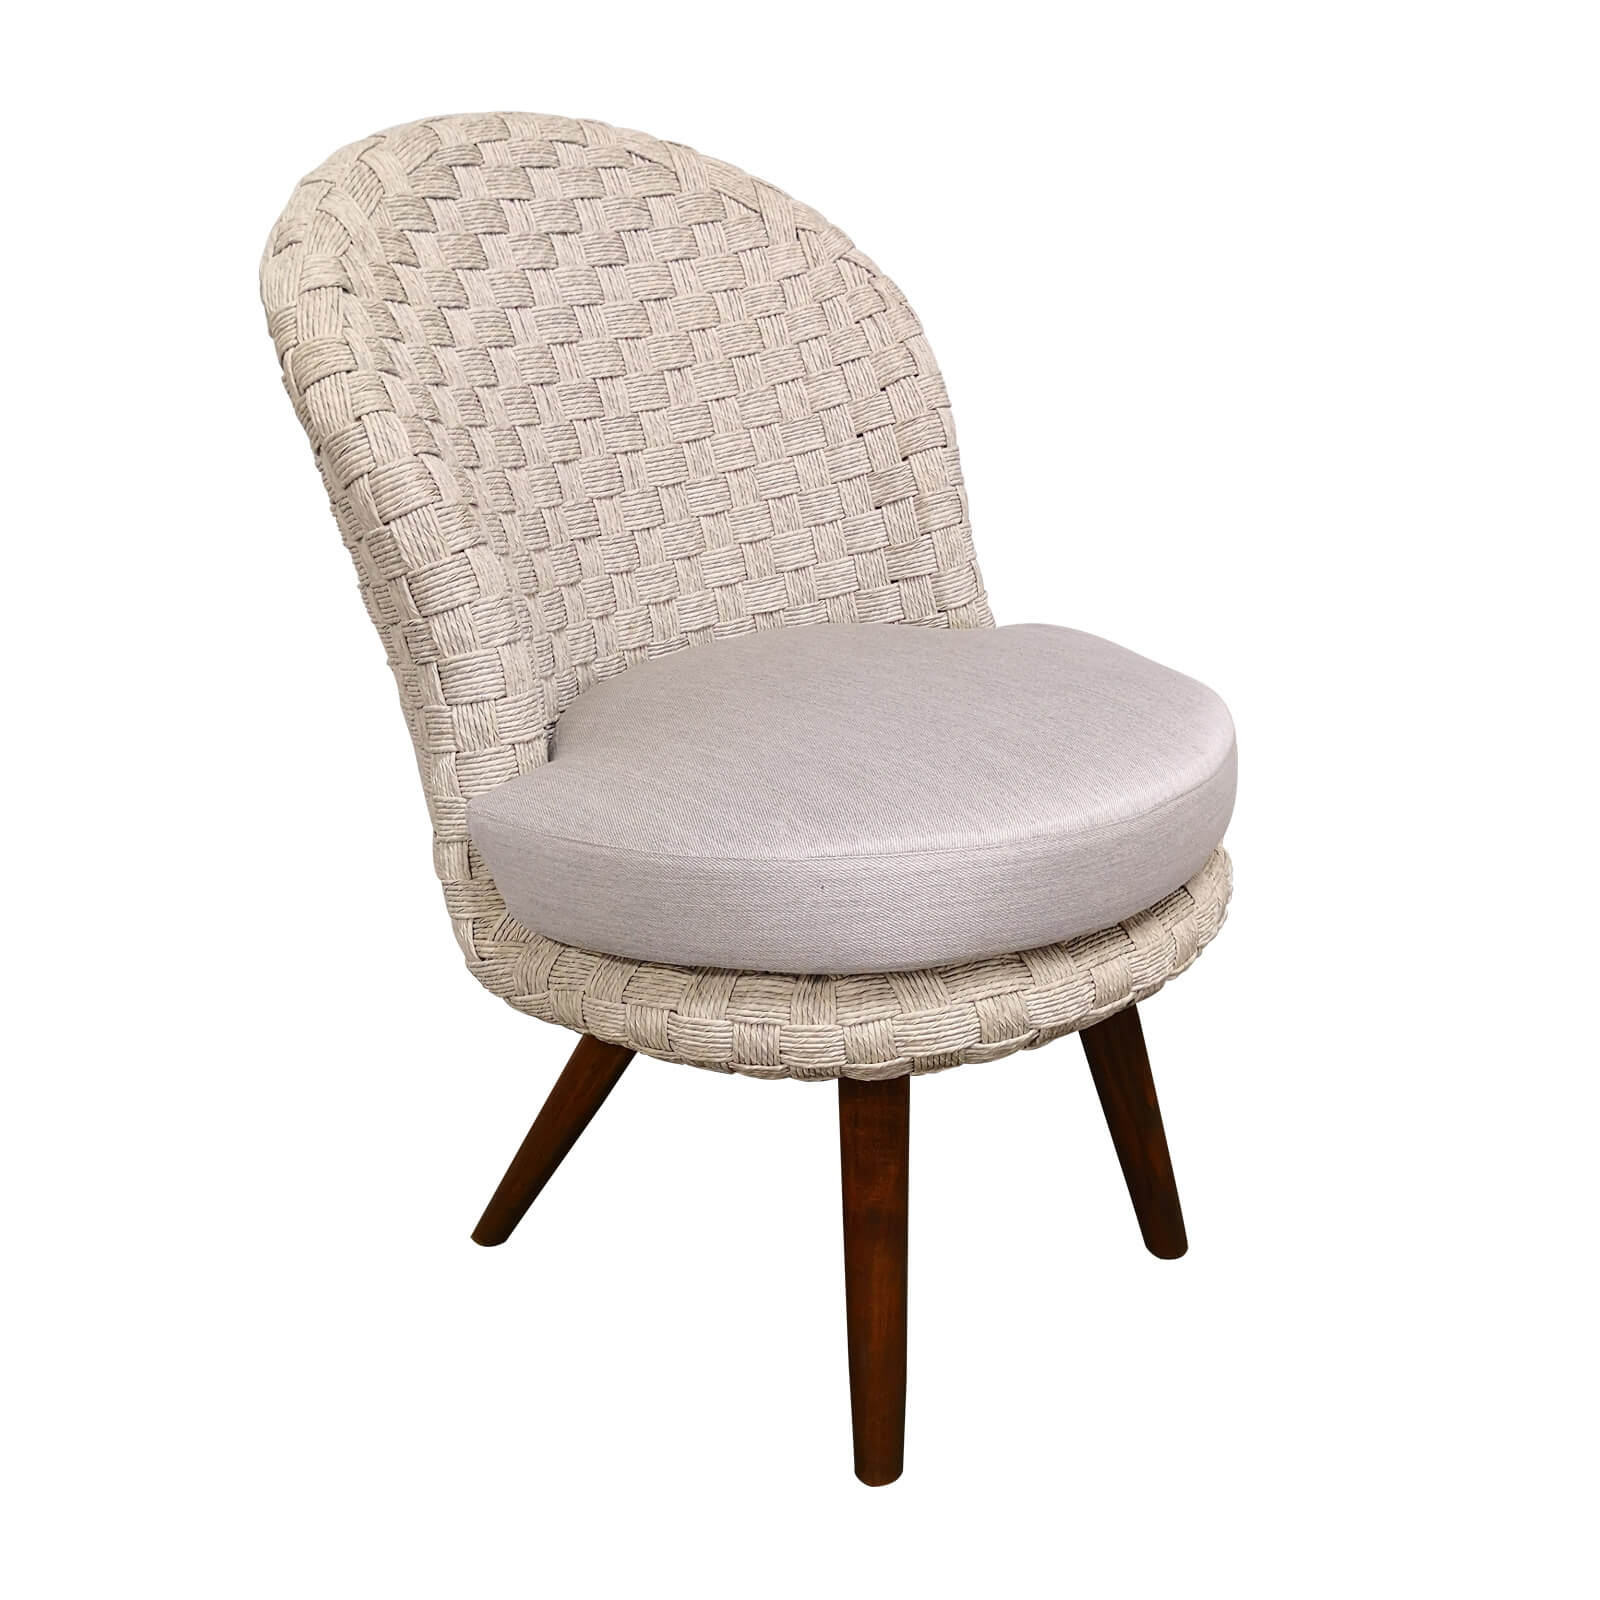 Two Design Lovers outdoor furniture Osier Belle Bulle dining chair Gribig weave